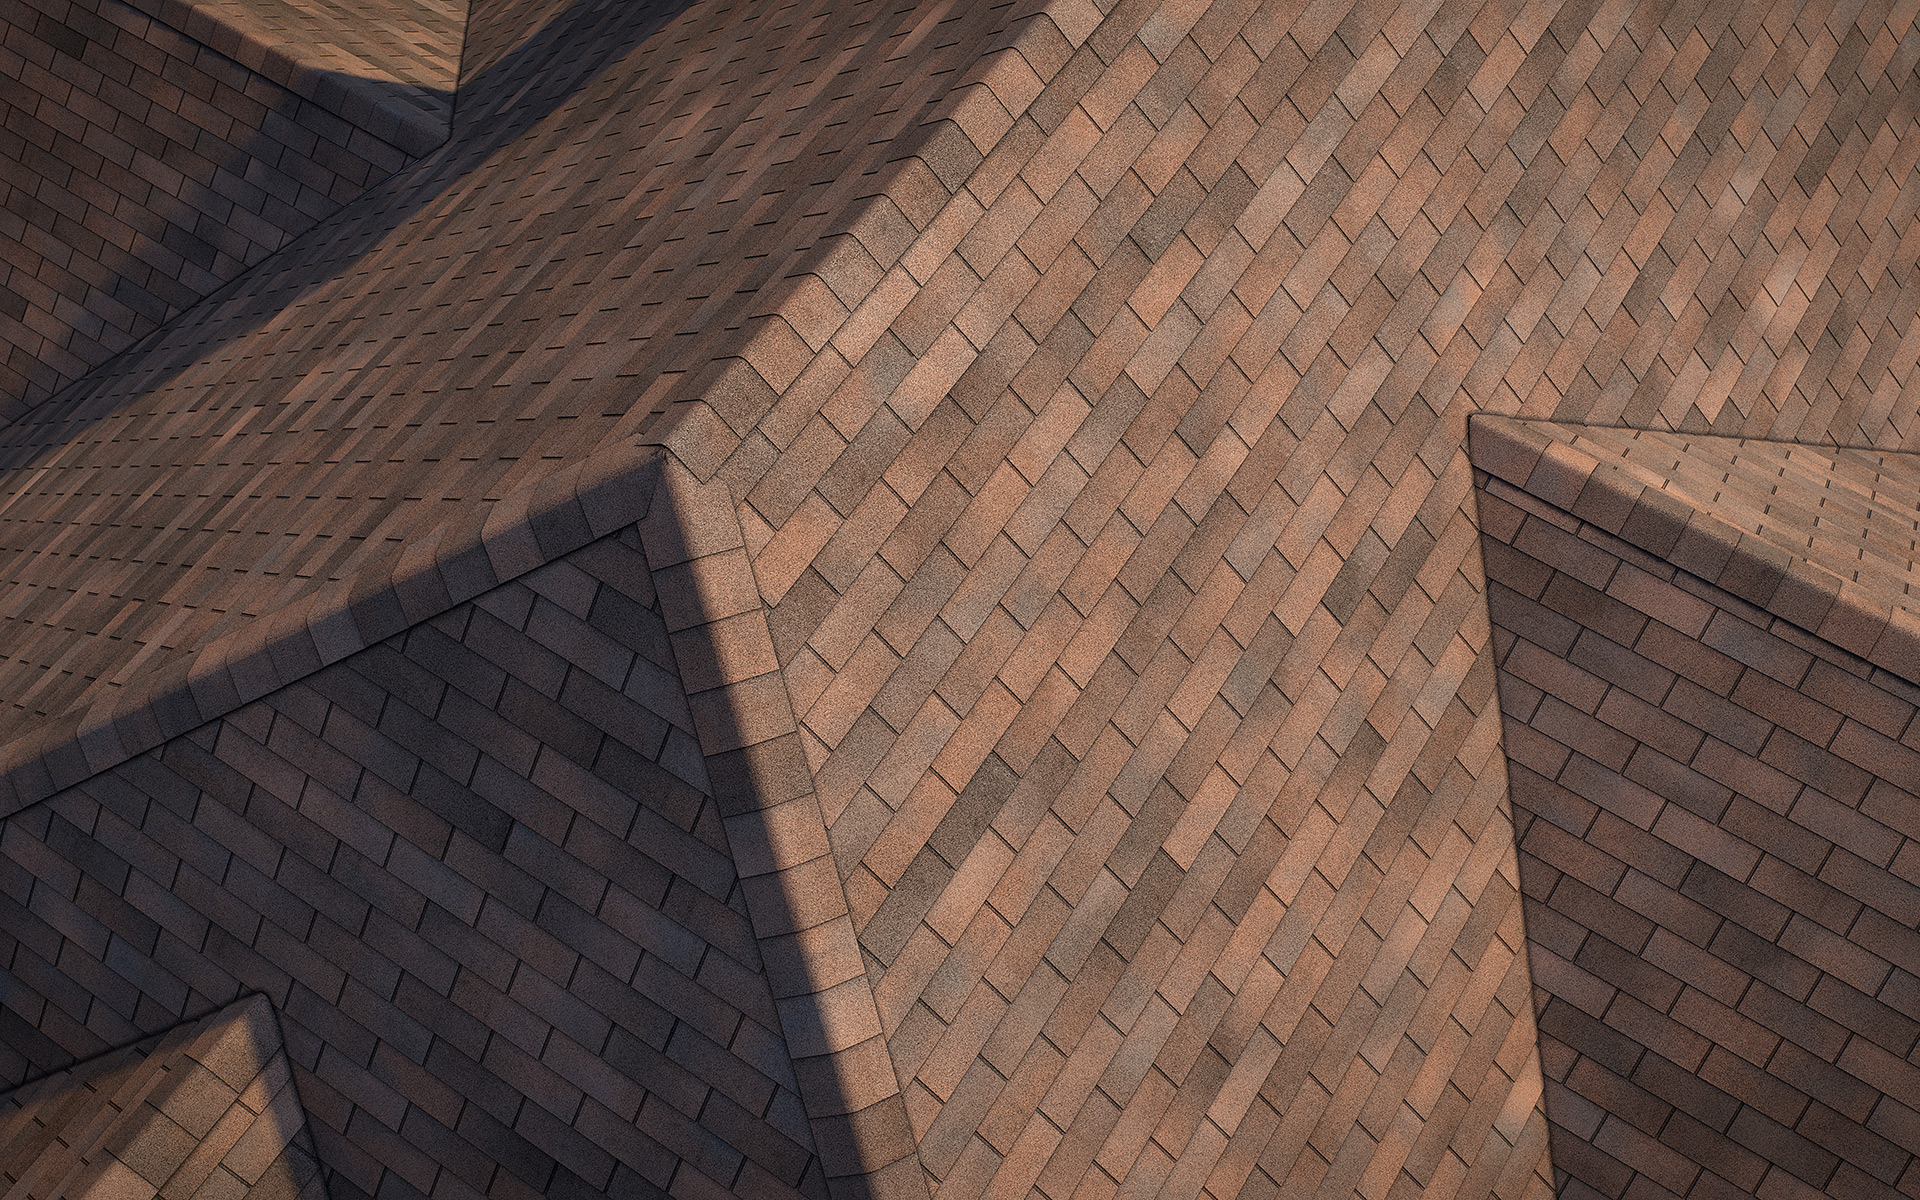 3-tab asphalt roof shingles rustic color 3D model preset for 3dsmax and RailClone. Rendered with vray, made for arch-viz.